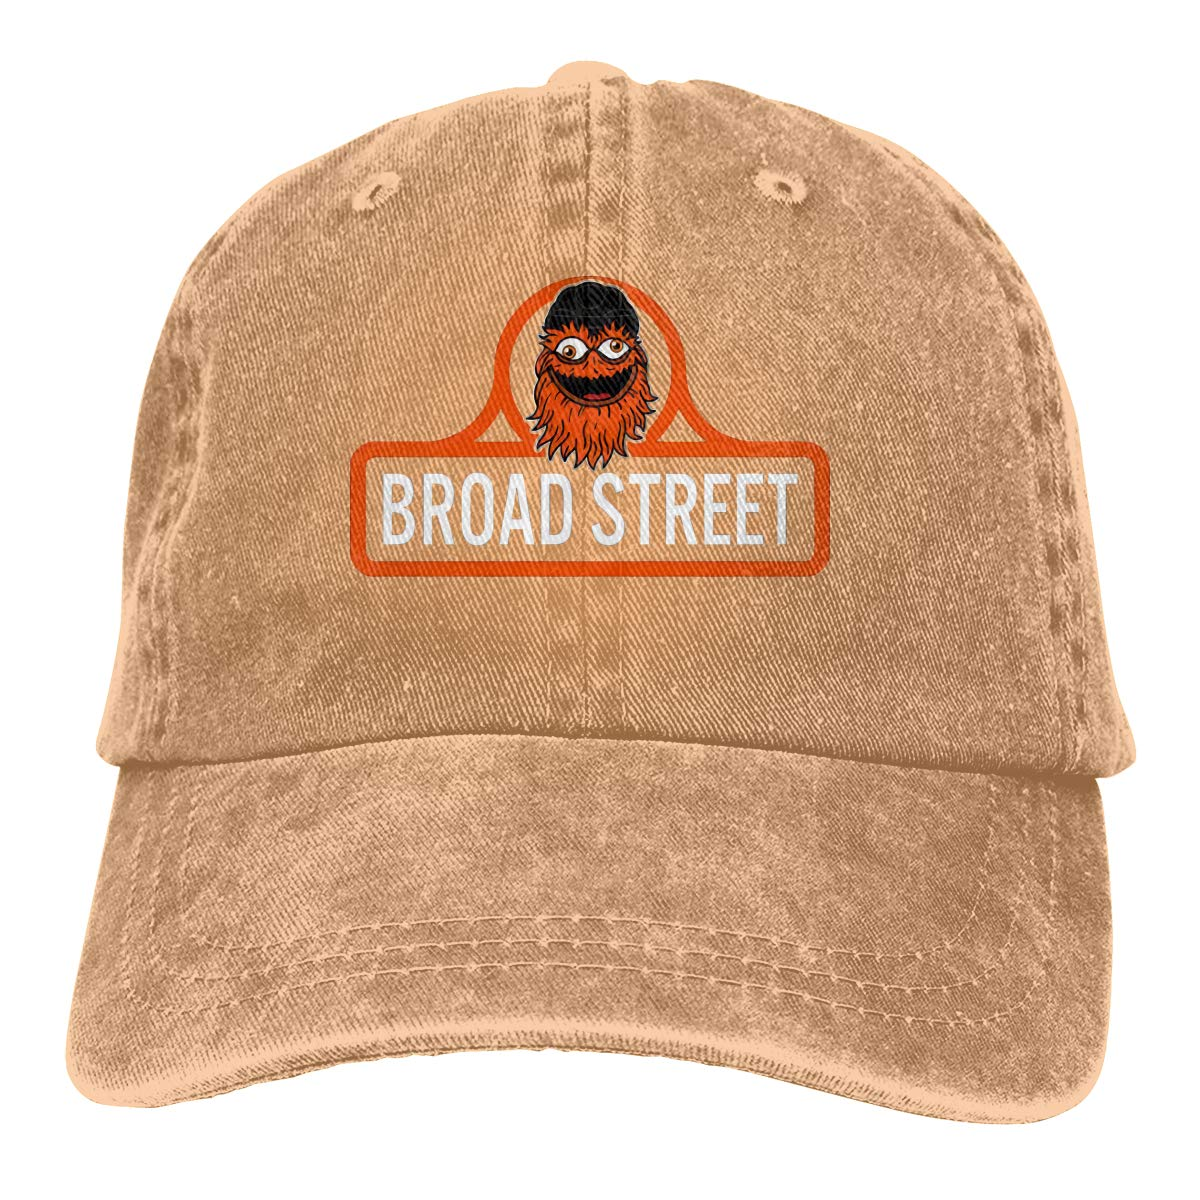 Time machined Gritty Broad Street Adjustable Visor Cotton Washed Denim Hats Black